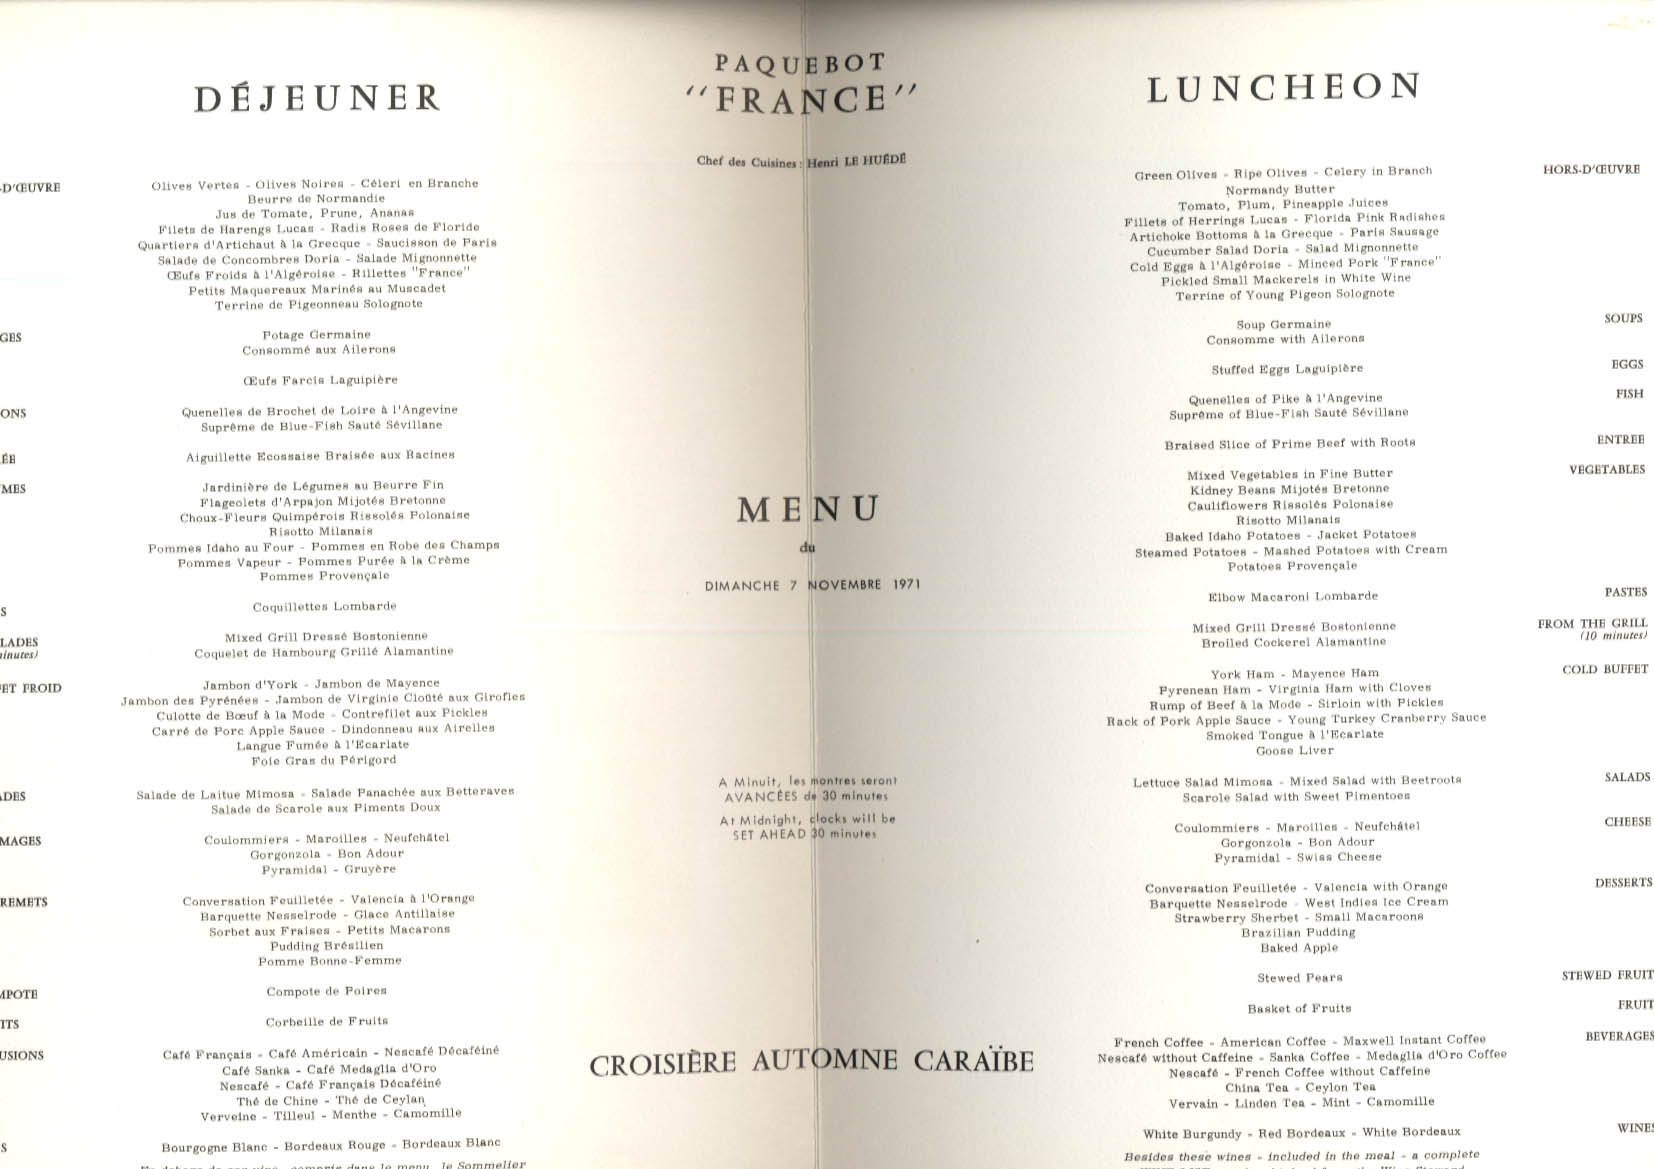 French Line S S France Caribbean Cruise Menu Luncheon 11/7 1971